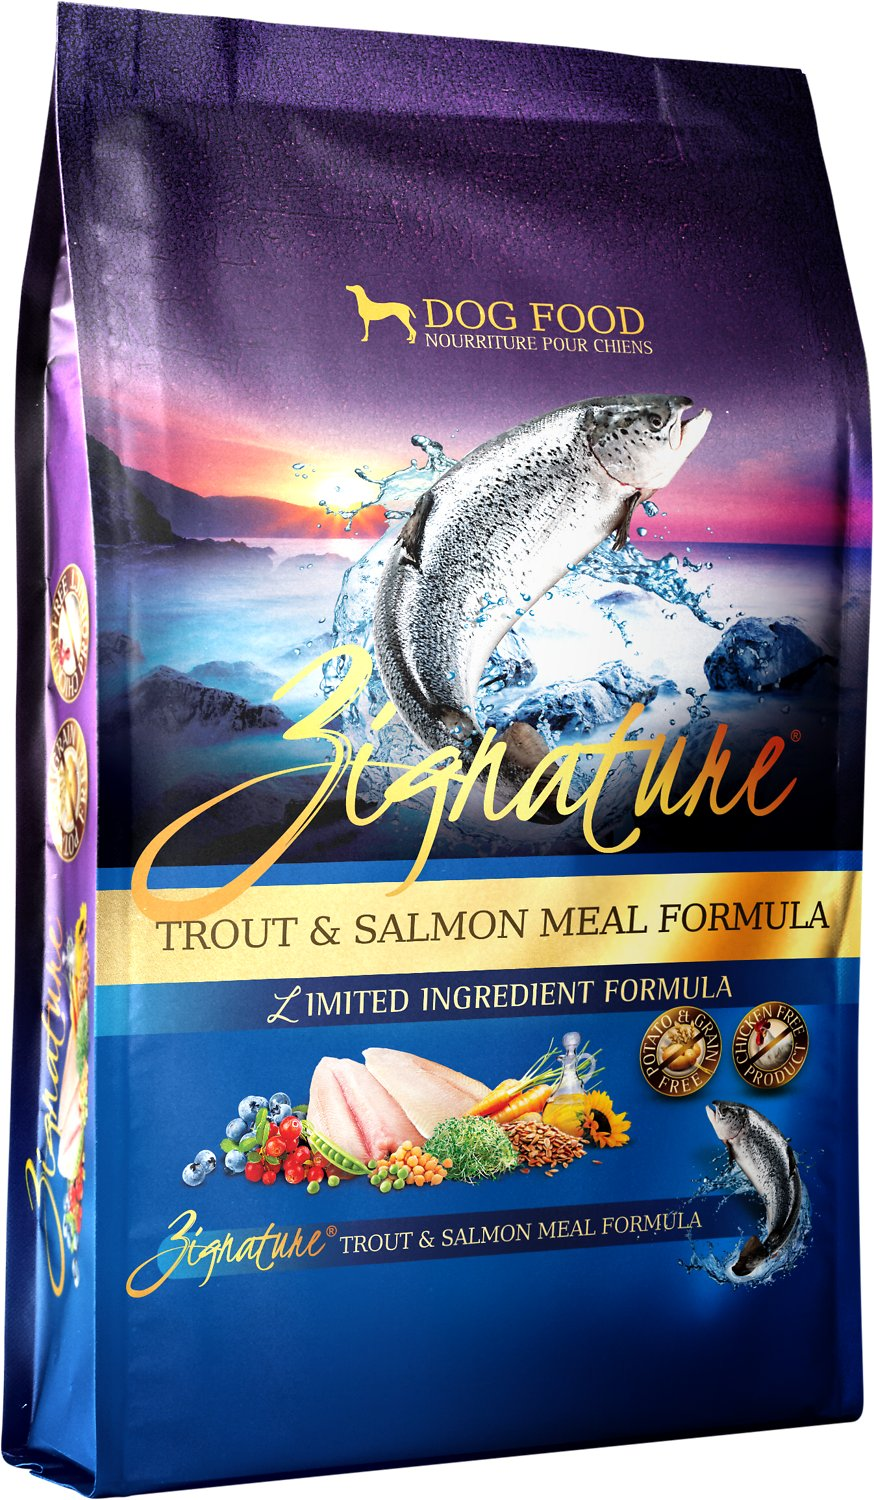 Zignature Trout & Salmon Meal Limited Ingredient Formula Grain-Free Dry Dog Food Image